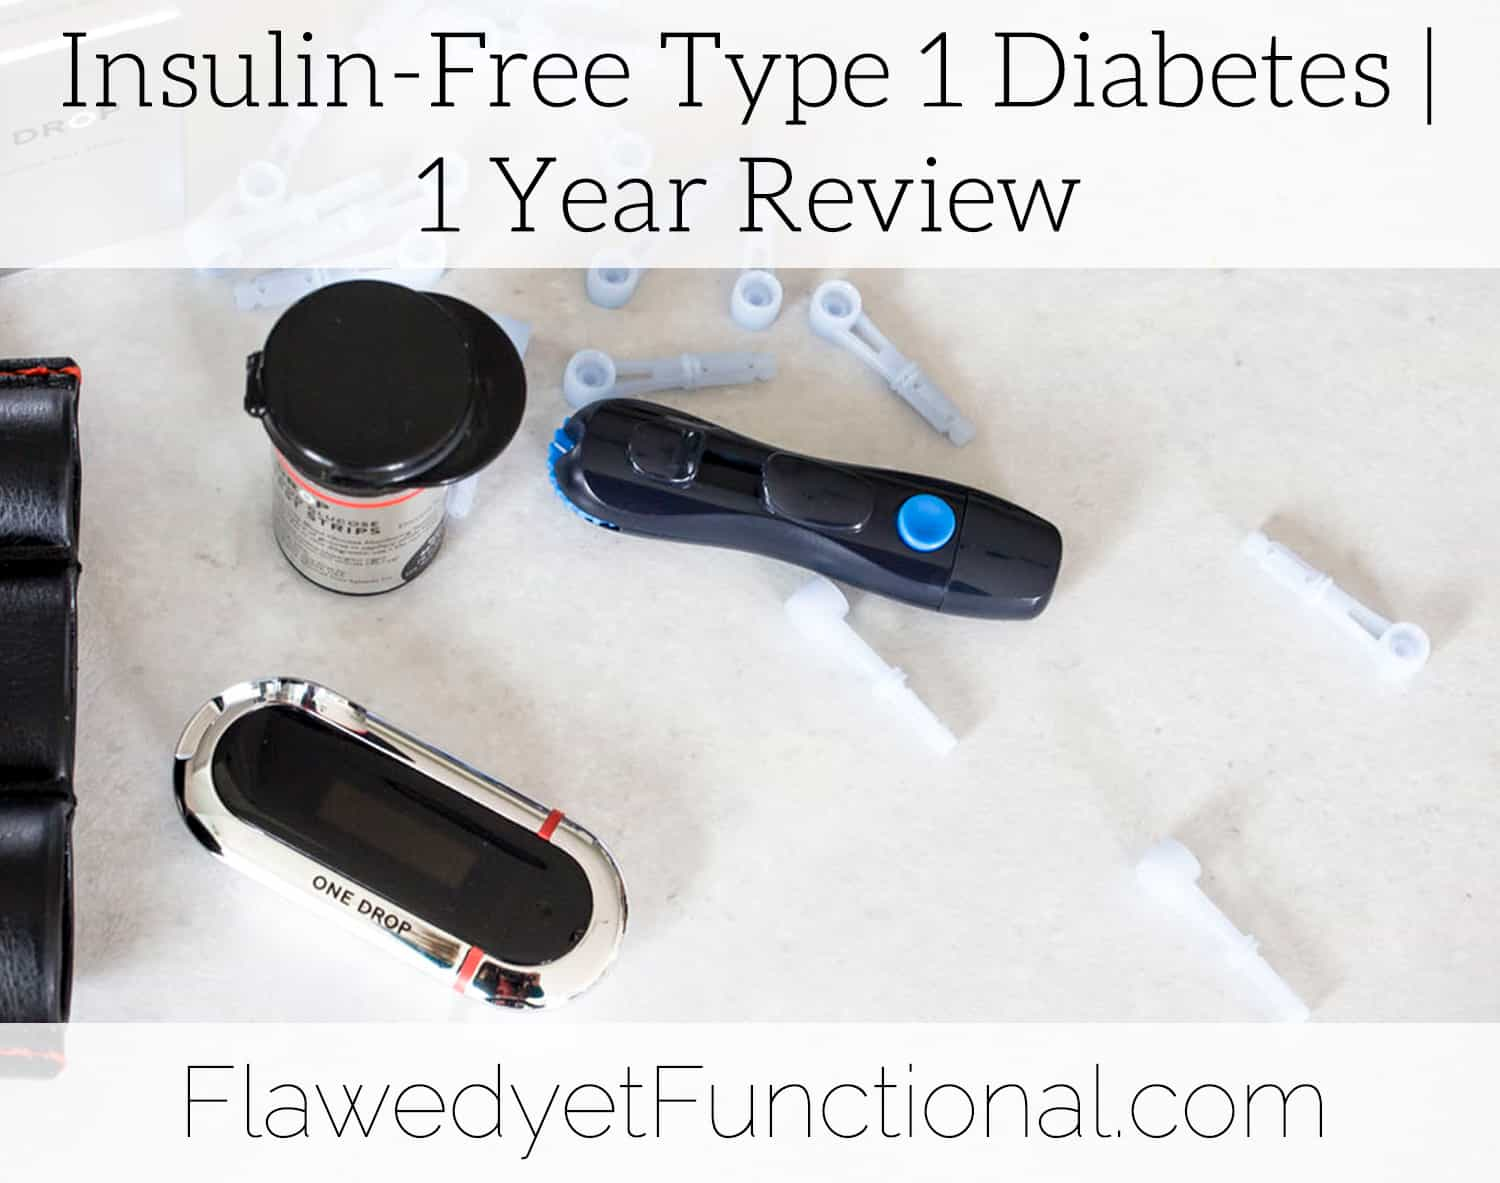 insulin free diabetes 1 year review